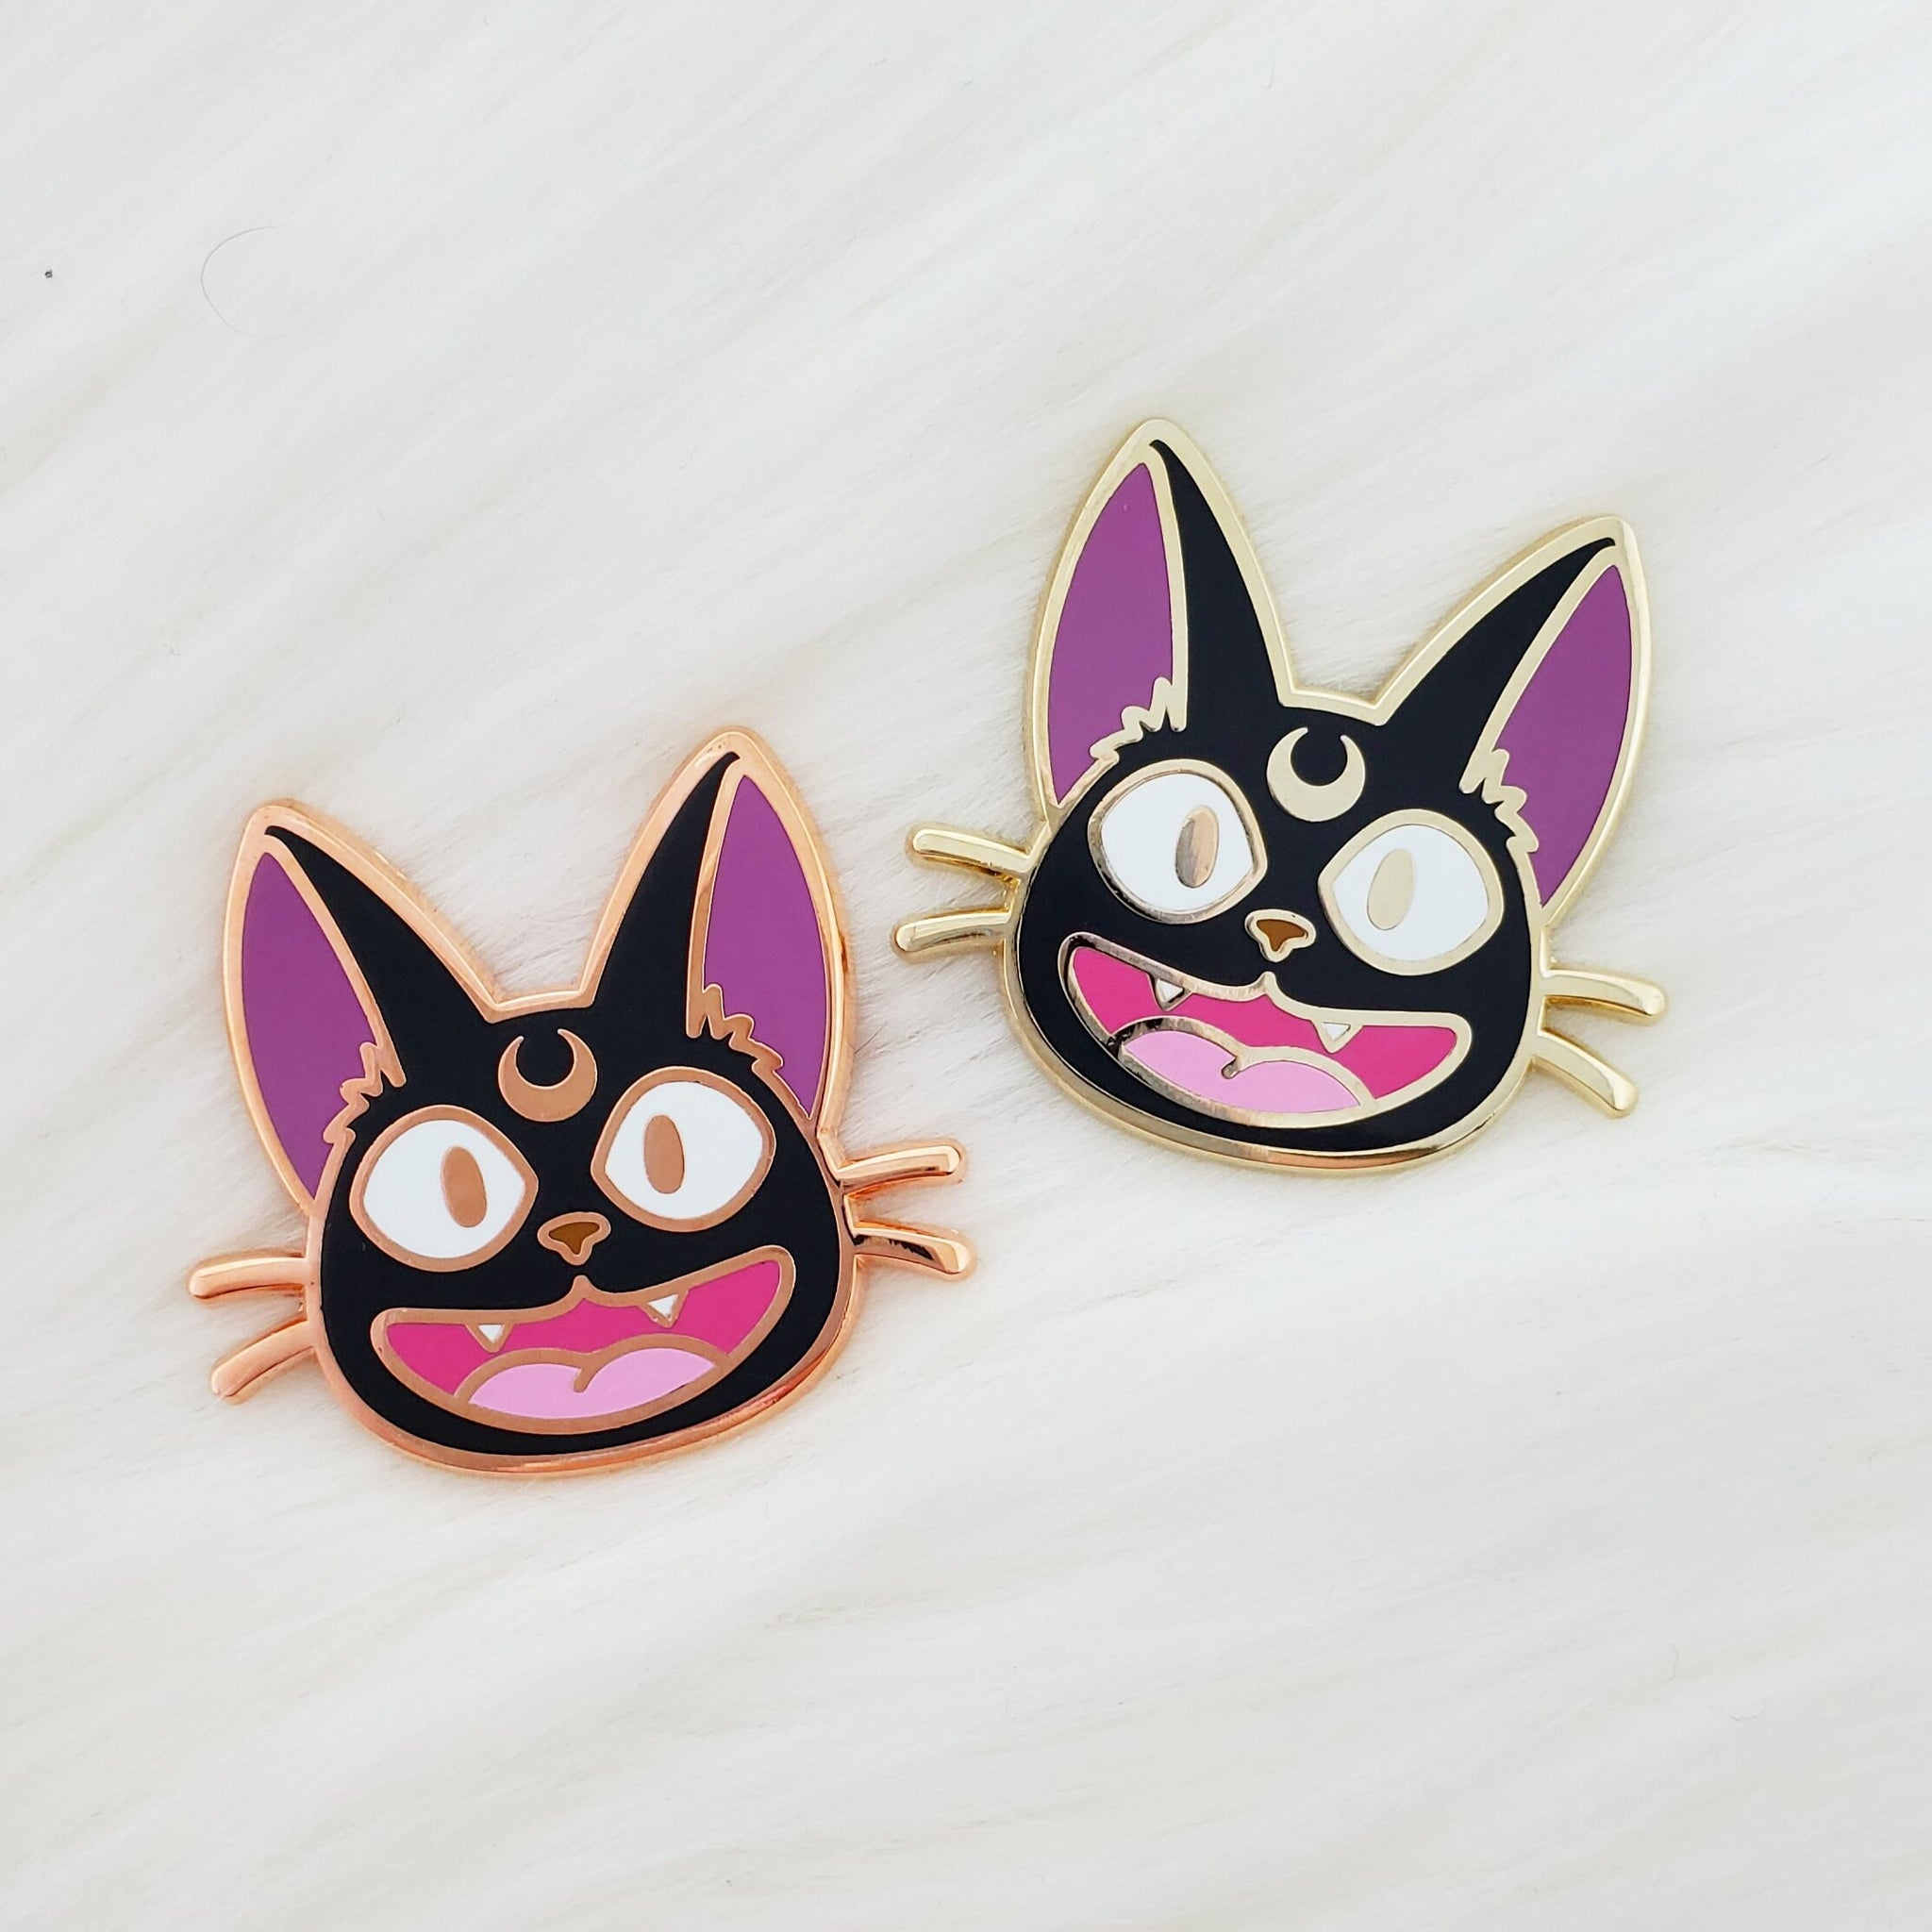 ♡ Jiji Moon Enamel Pin ♡